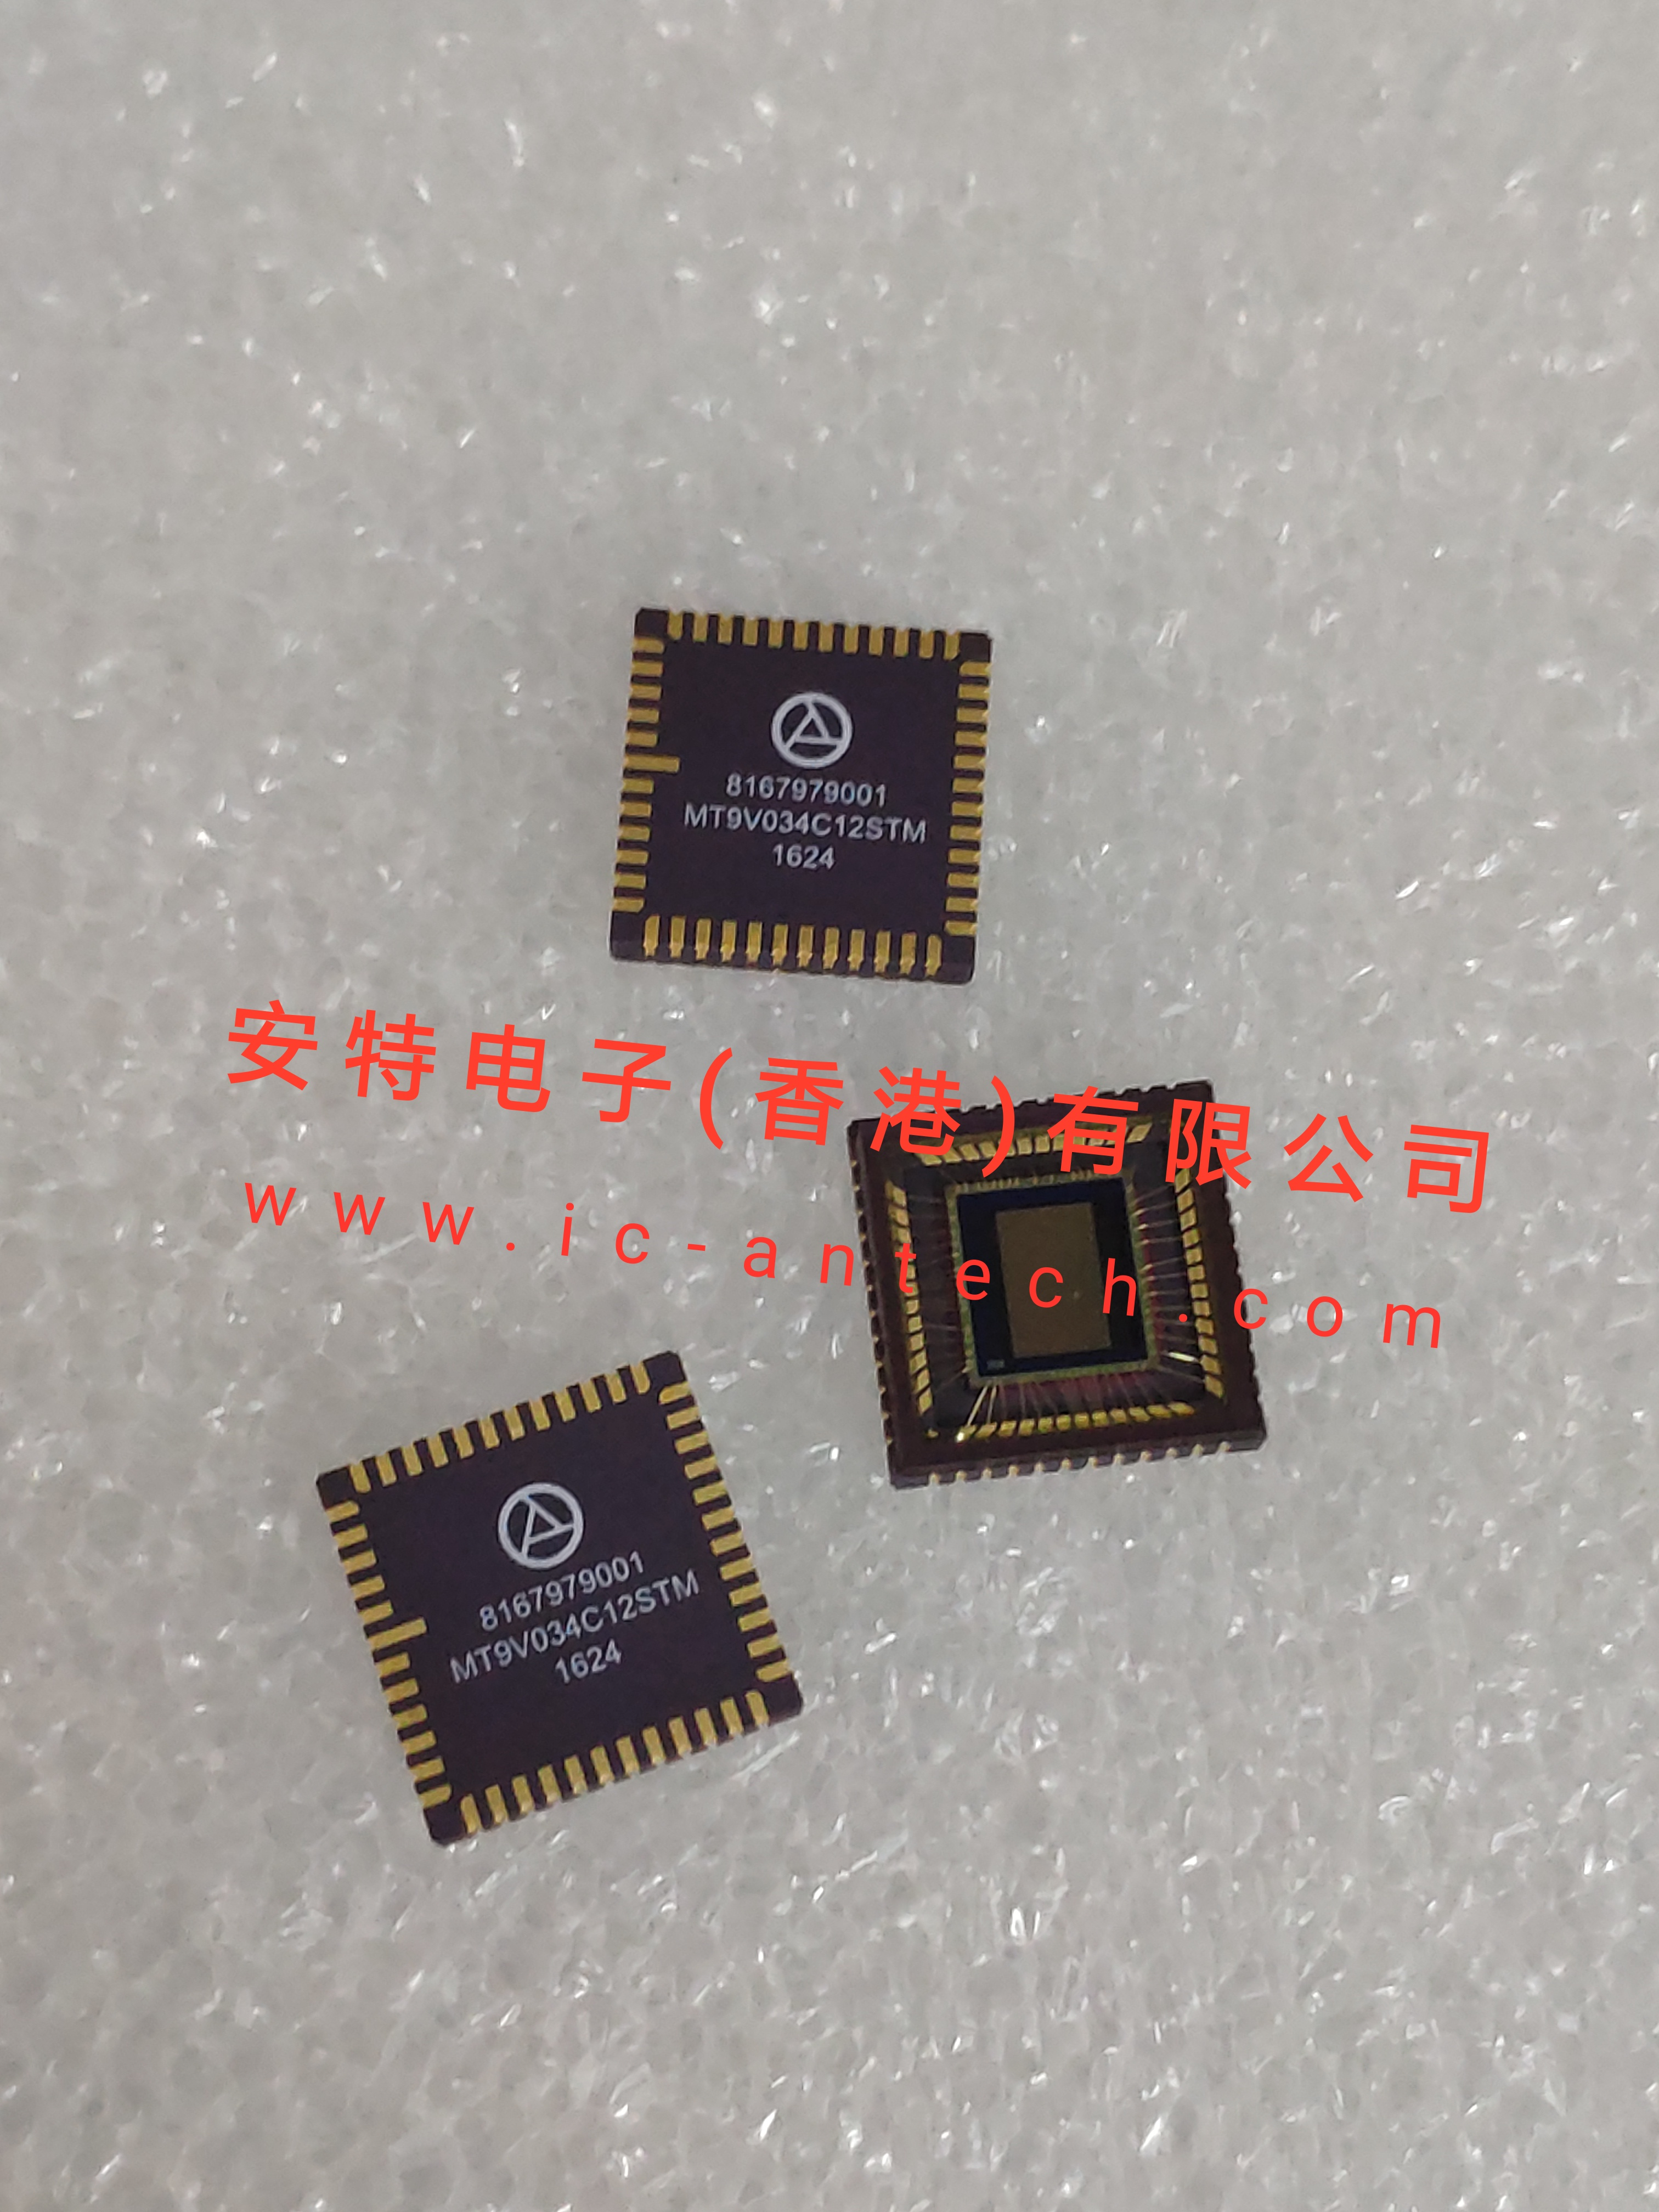 10PCS New Original MT9V034C12STM CLCC48